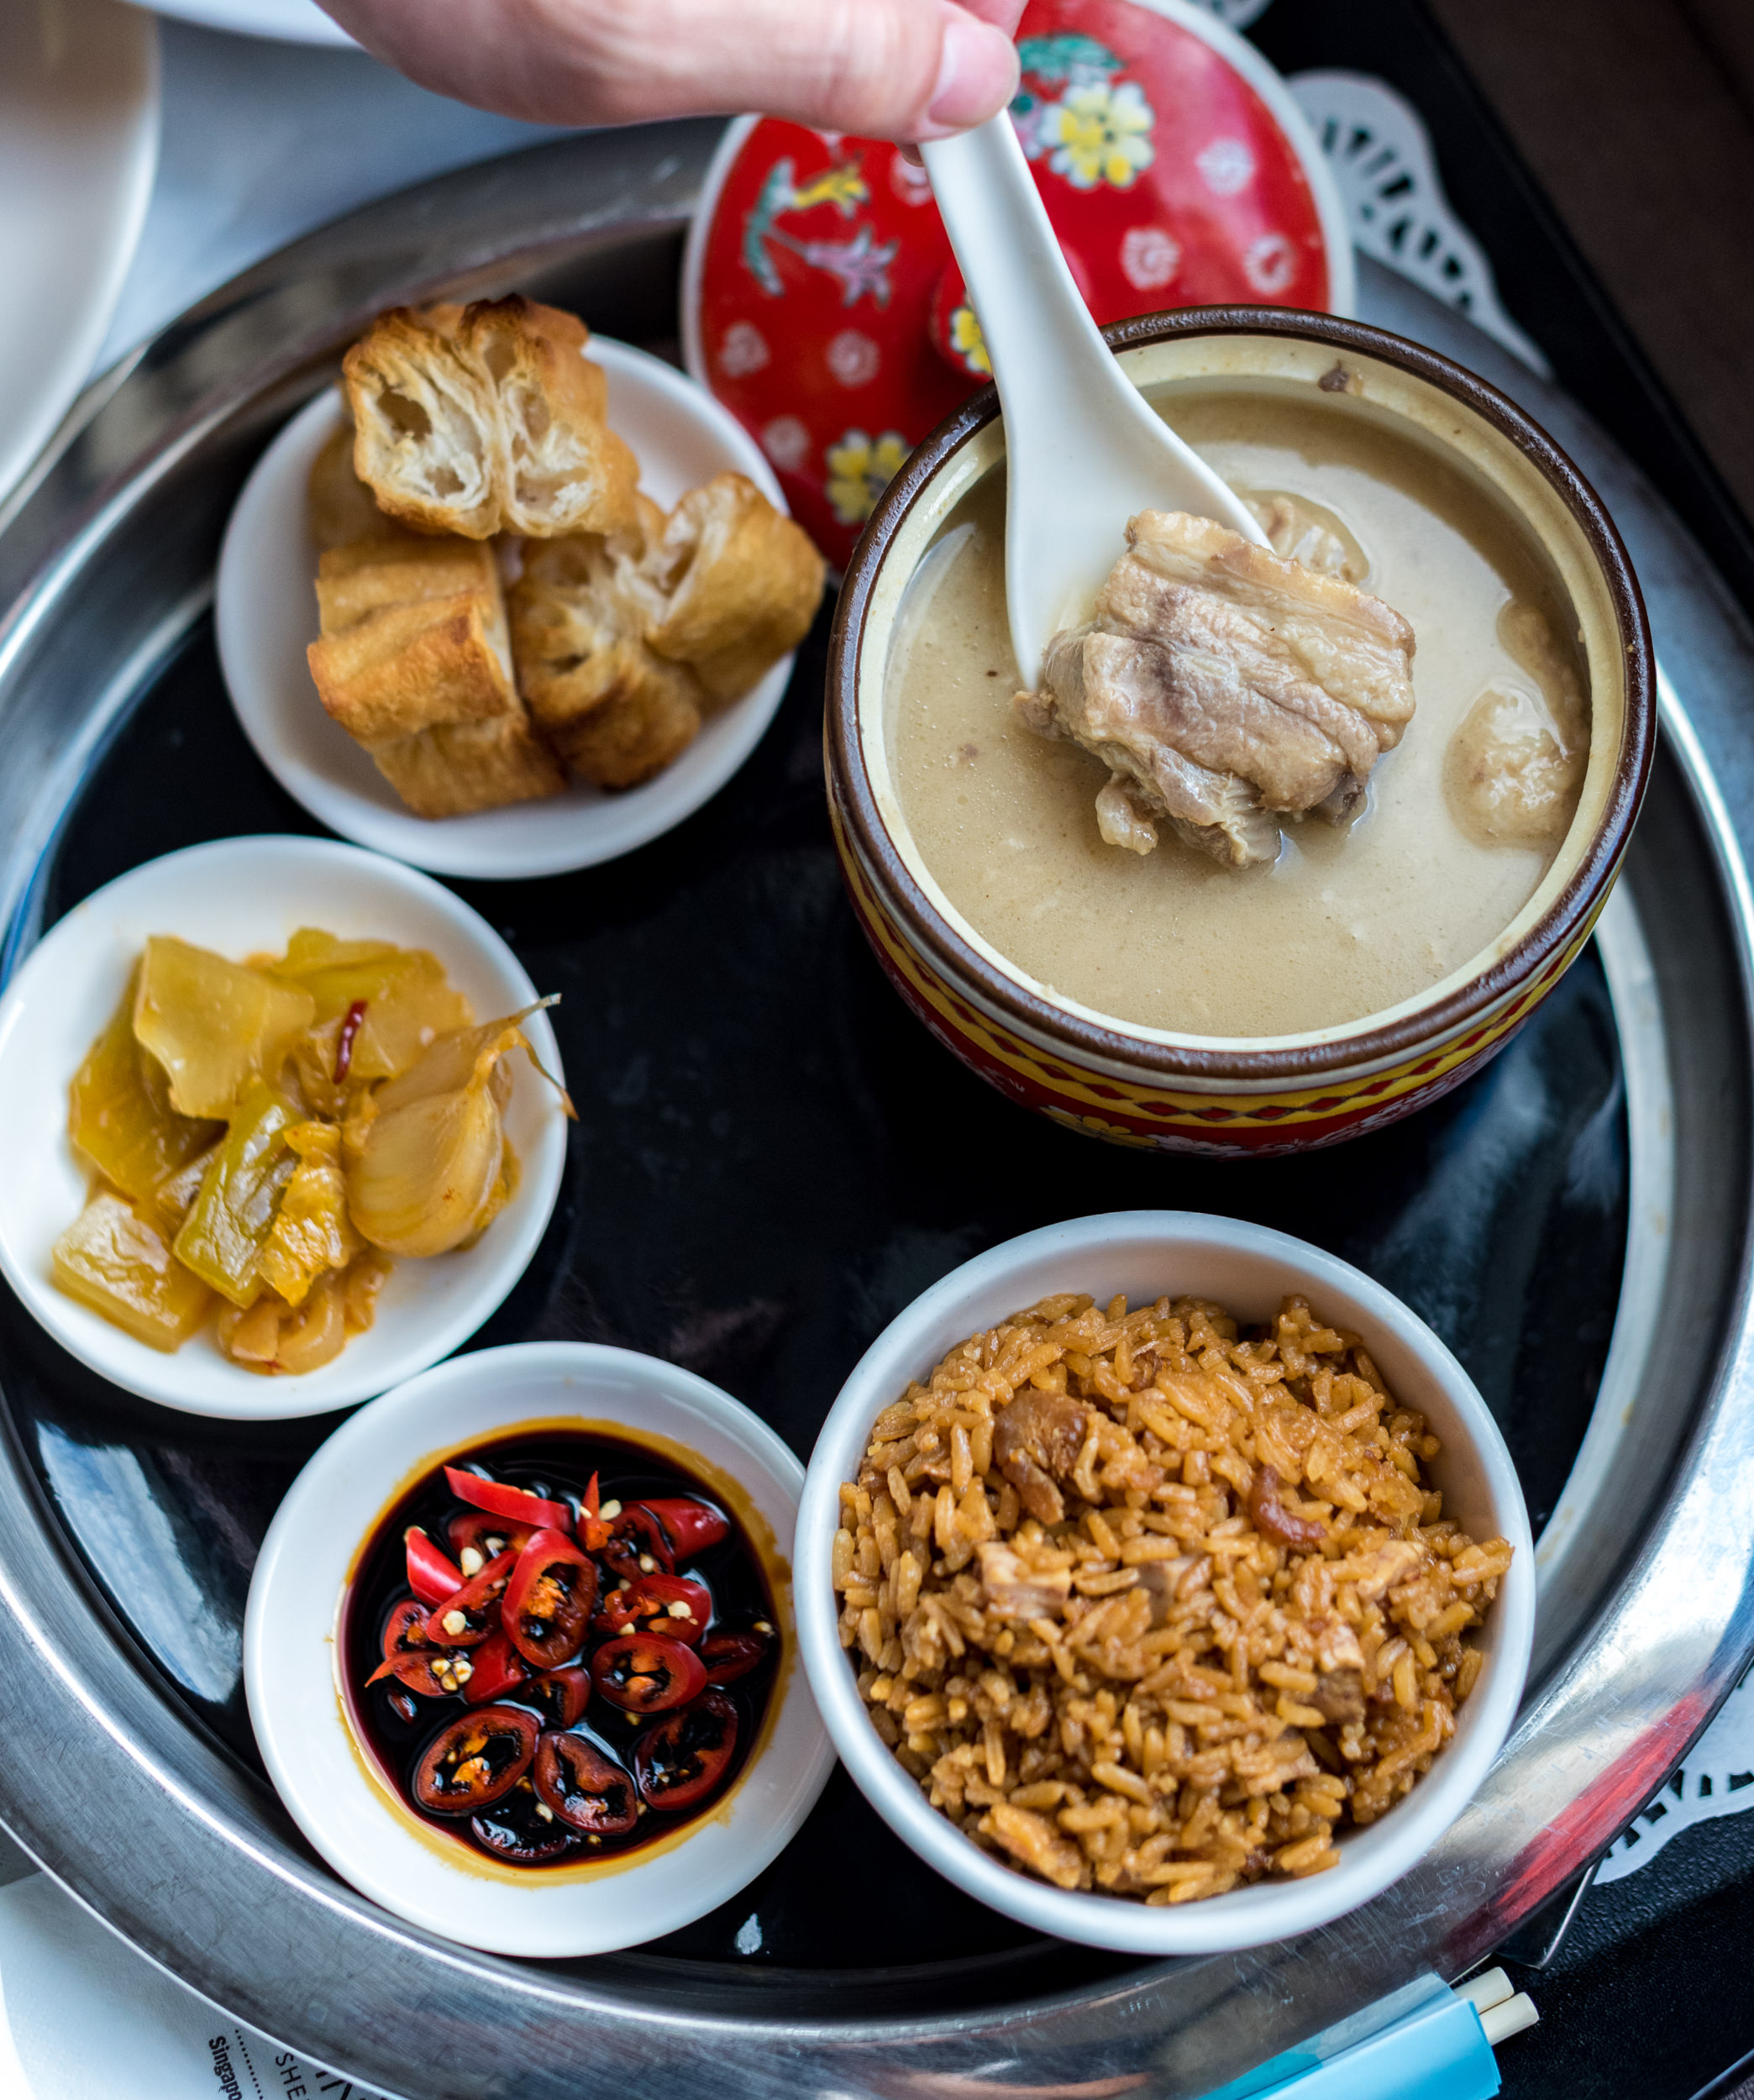 Old Time Bak Kut Teh (Room Service)   Premium Room - Four Points by Sheraton Singapore, Riverview